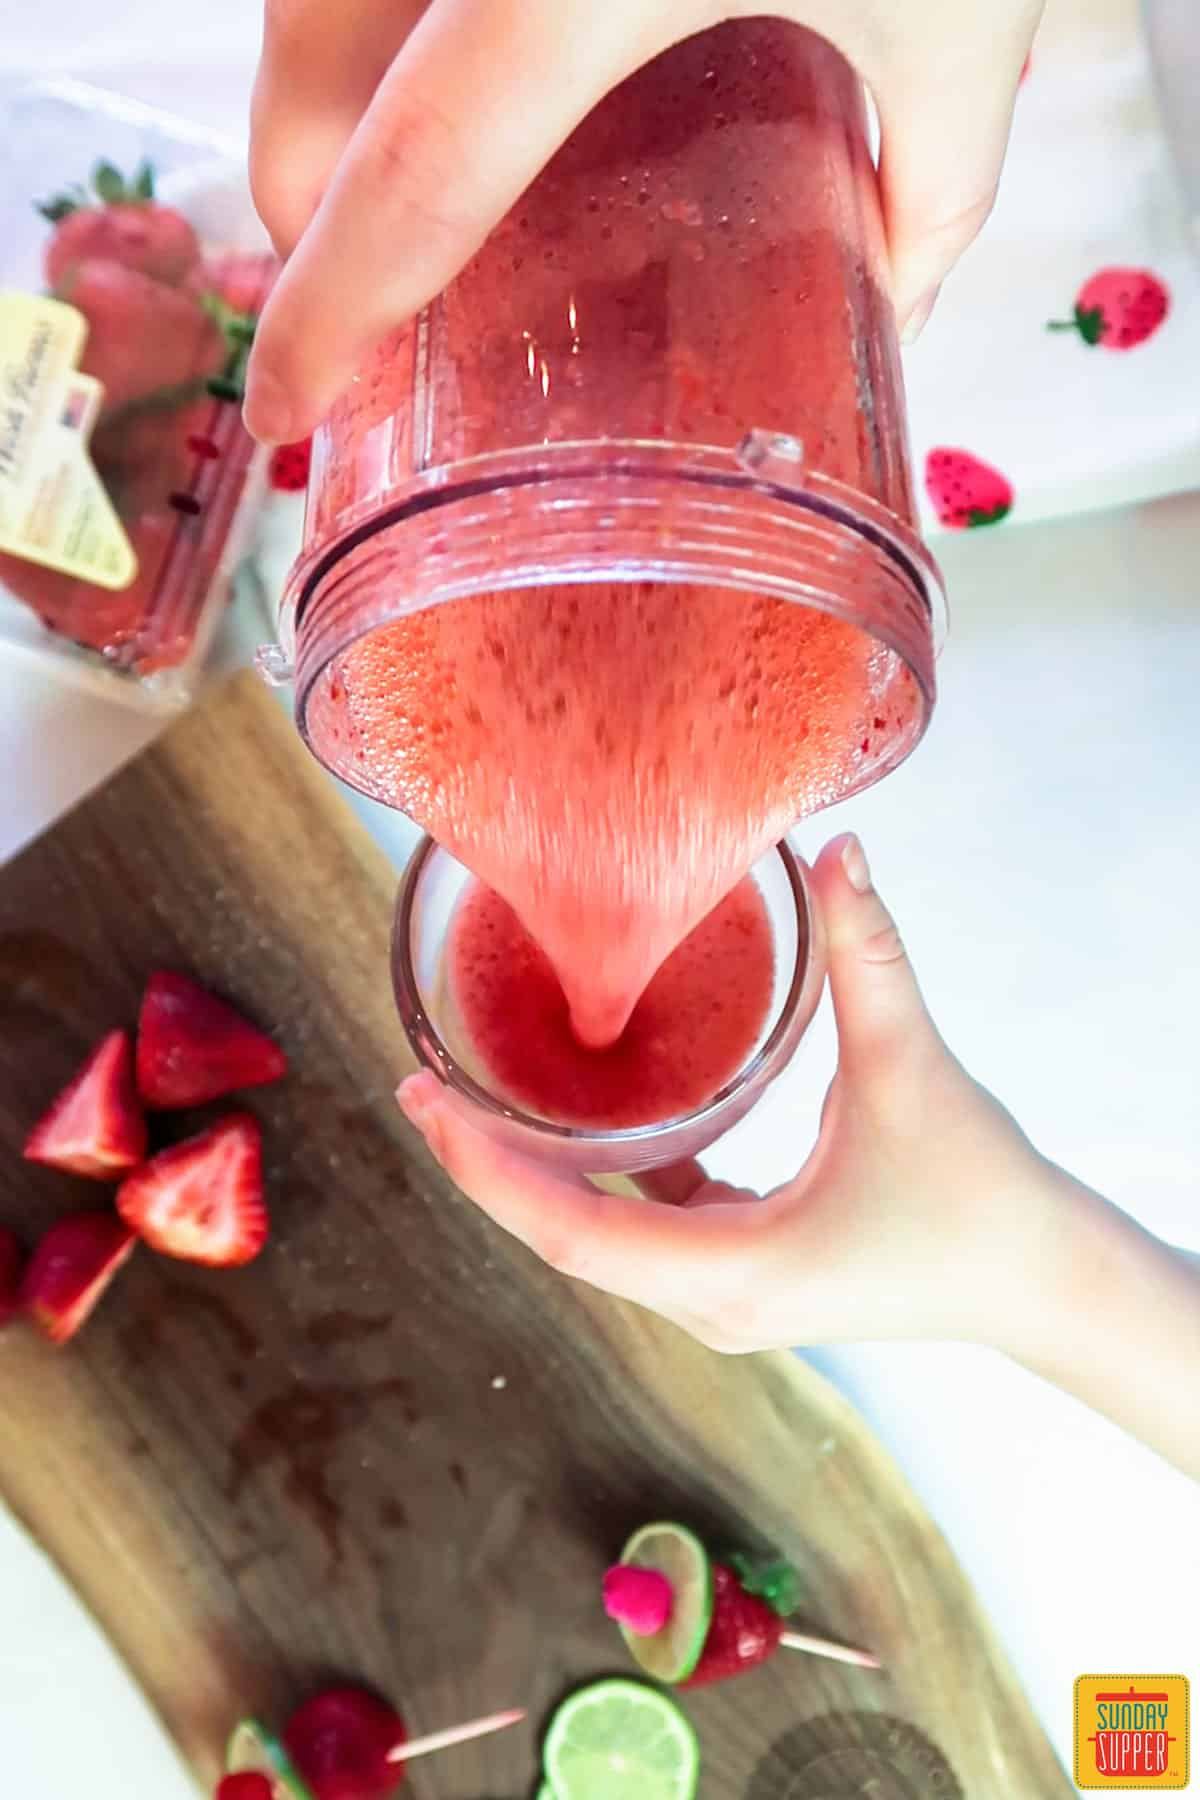 Pouring strawberry daiquiri into a glass cup